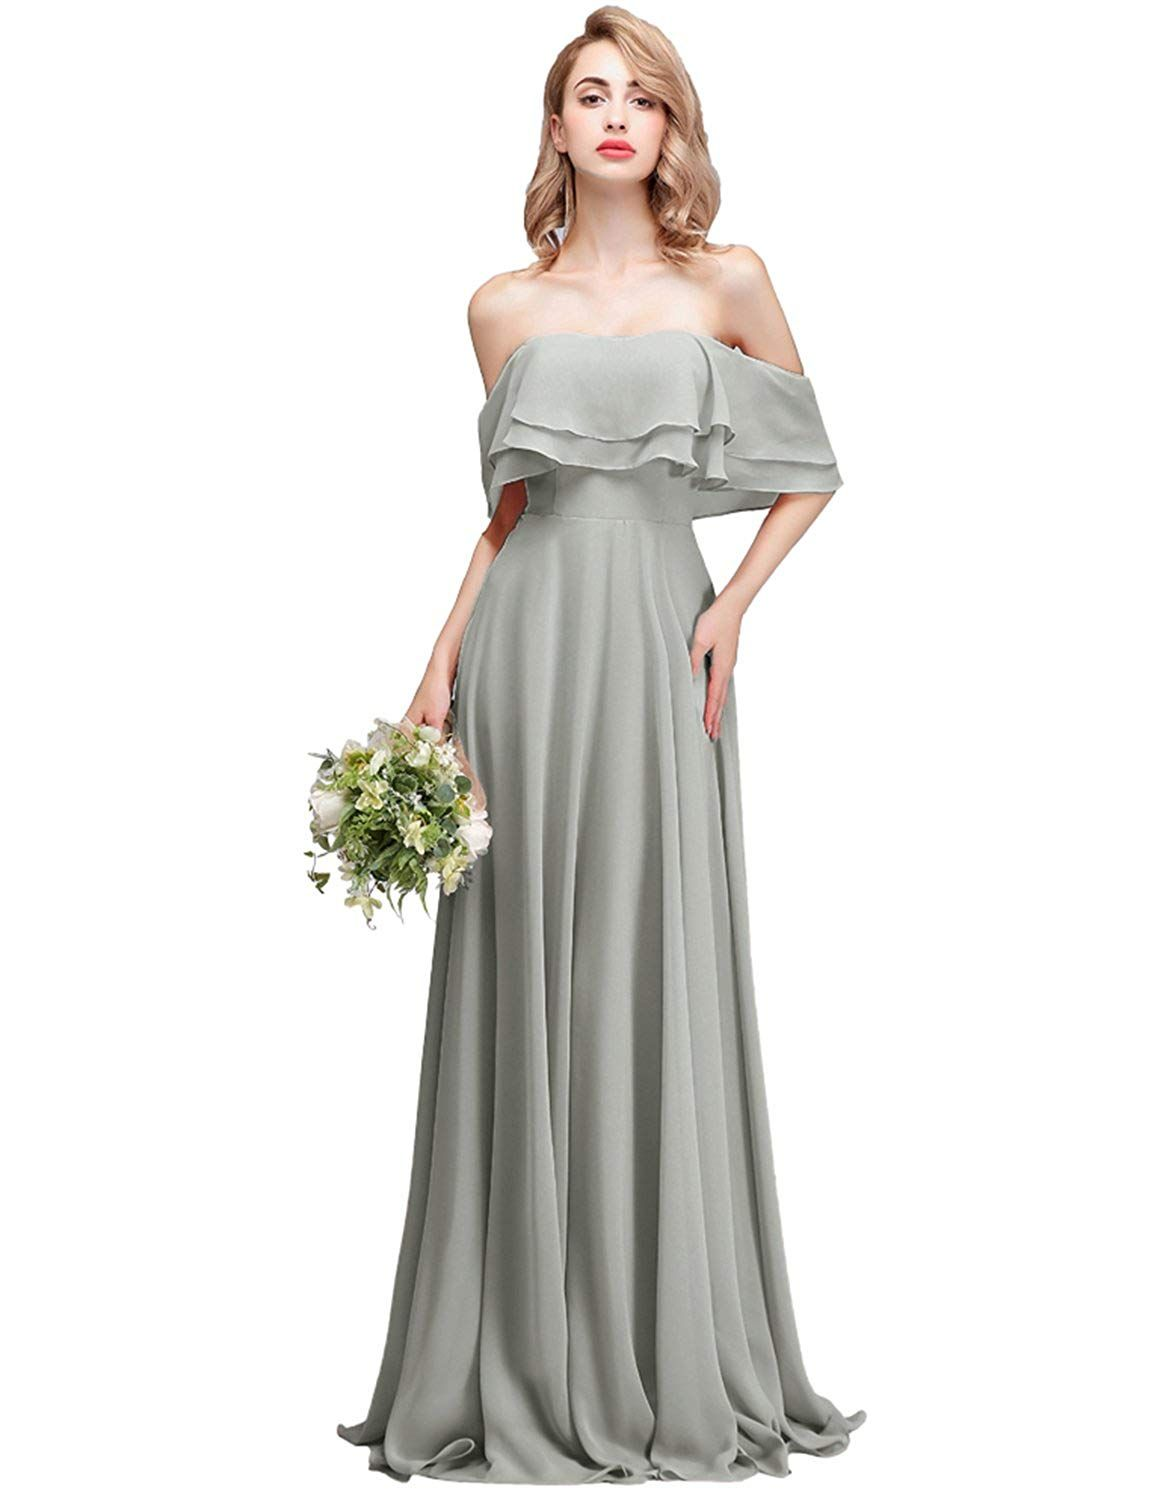 016744e619e2 CLOTHKNOW Strapless Chiffon Bridesmaid Dresses Long with Shoulder Ruffles  for Women Girls to Wedding Party Gowns at Amazon Women's Clothing store: